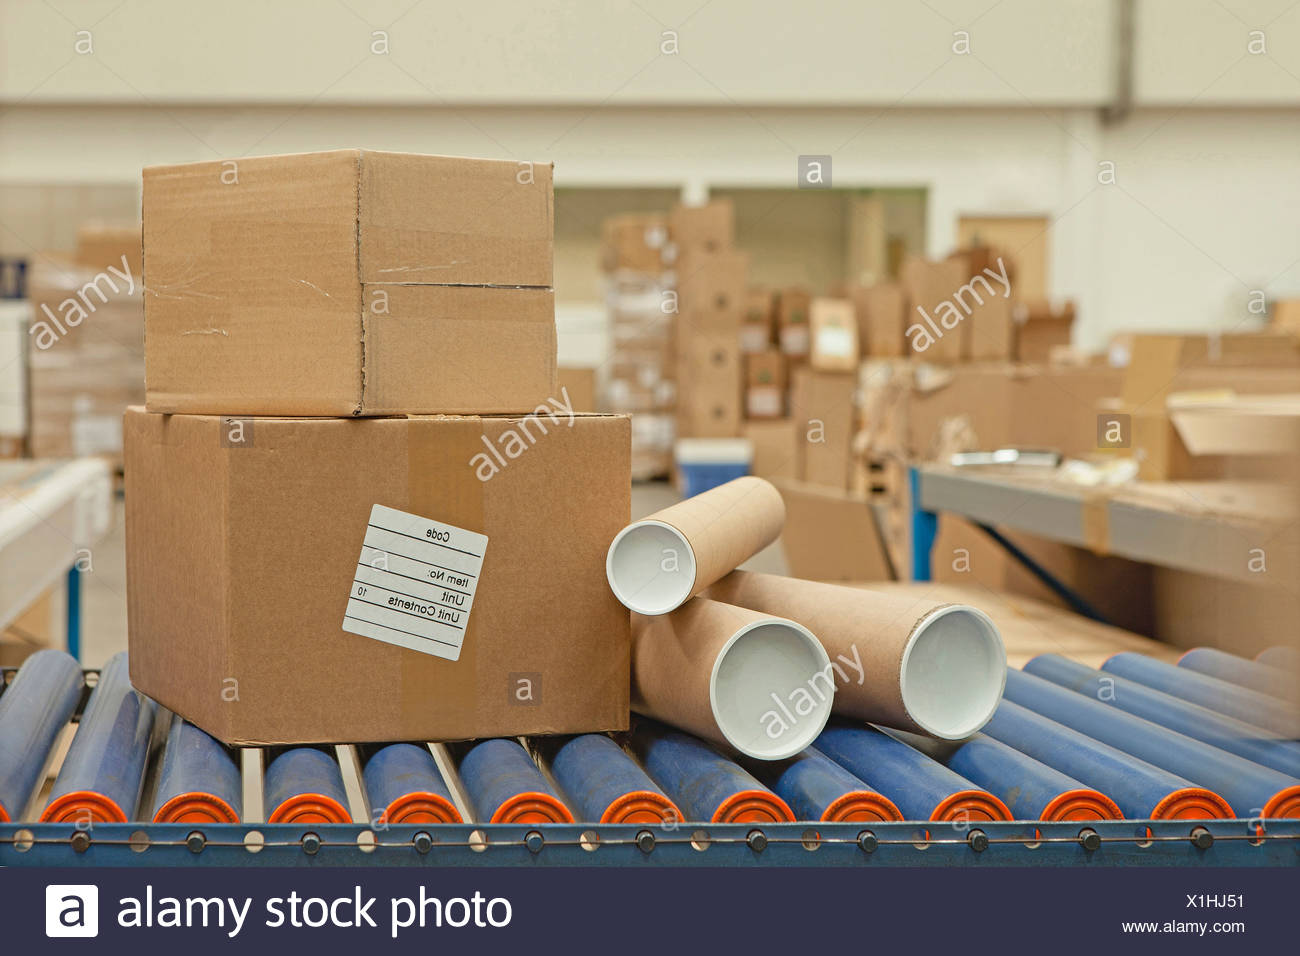 Cardboard boxes and tubes on conveyor belt - Stock Image